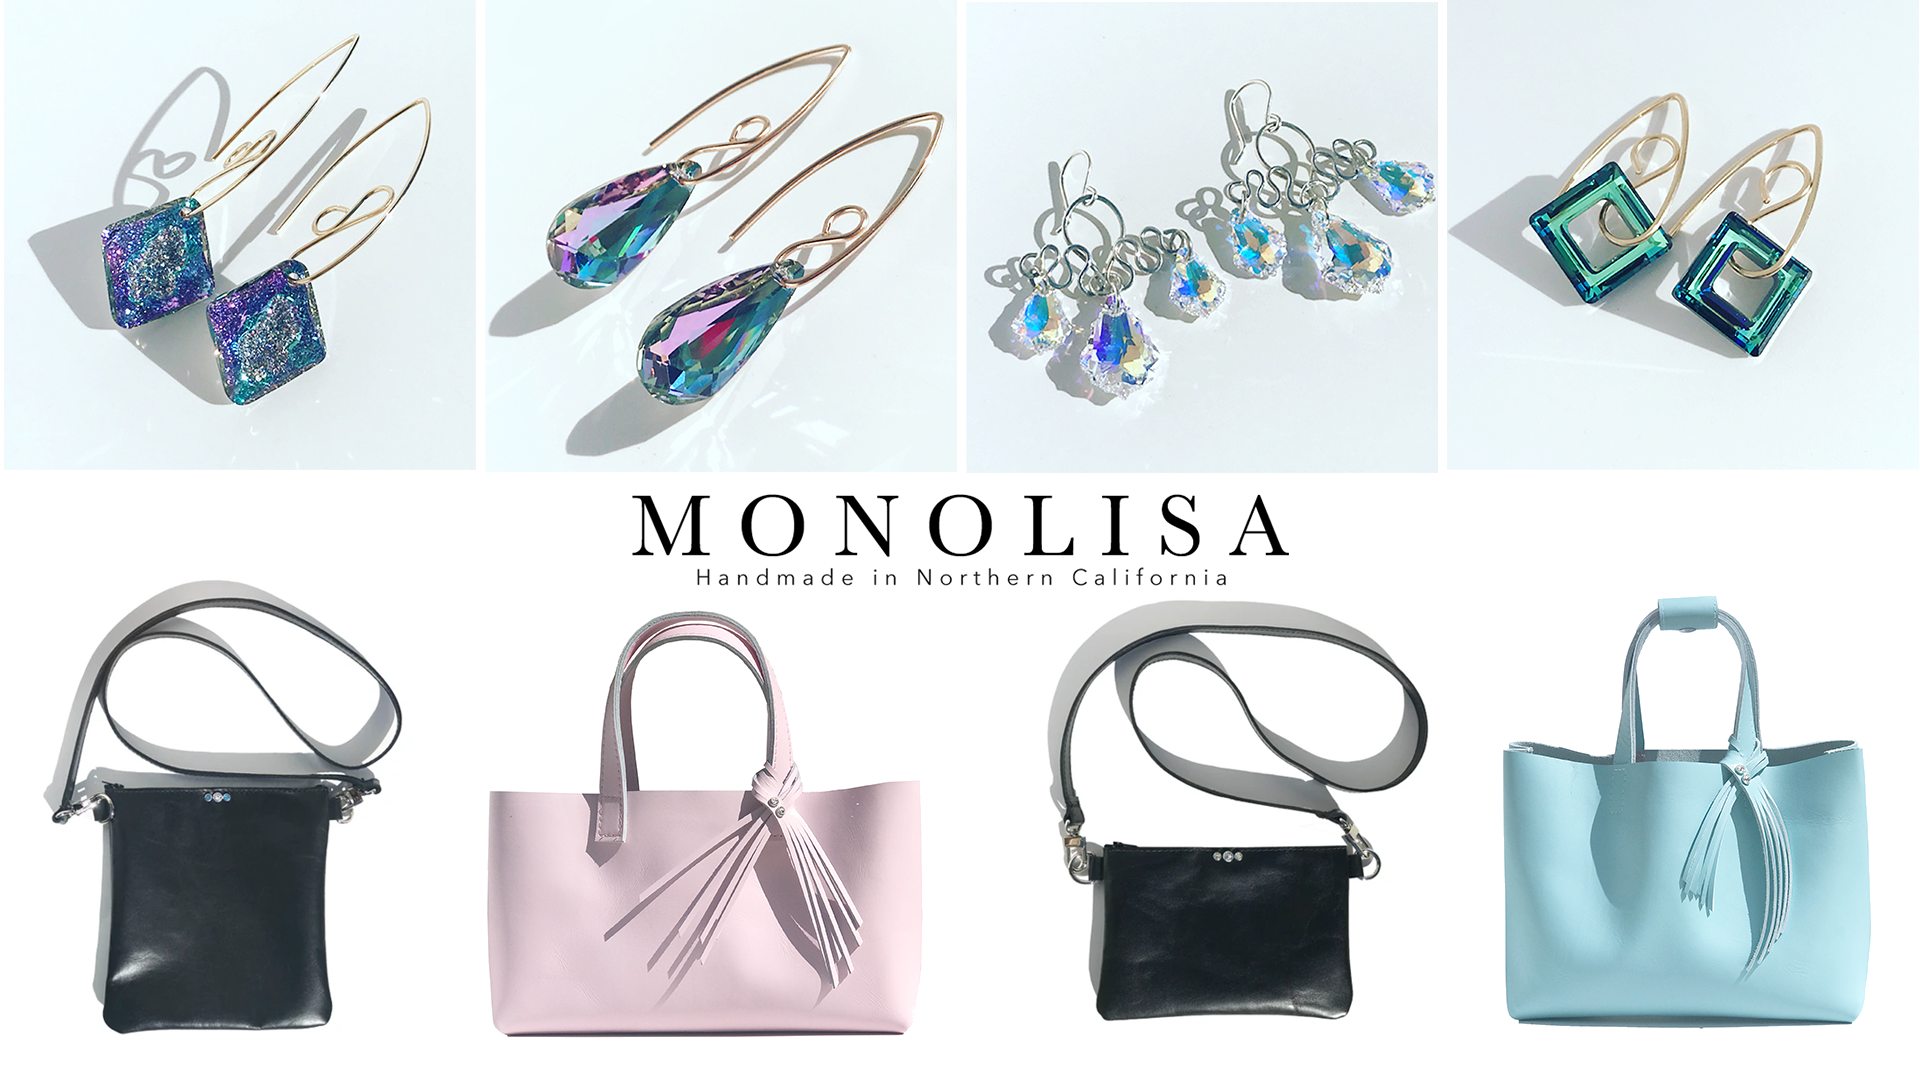 Montclair Village Summer Art Walk - Featuring MONOLISA Handmade Handbags, Bag Accessories & Jewelry For Women